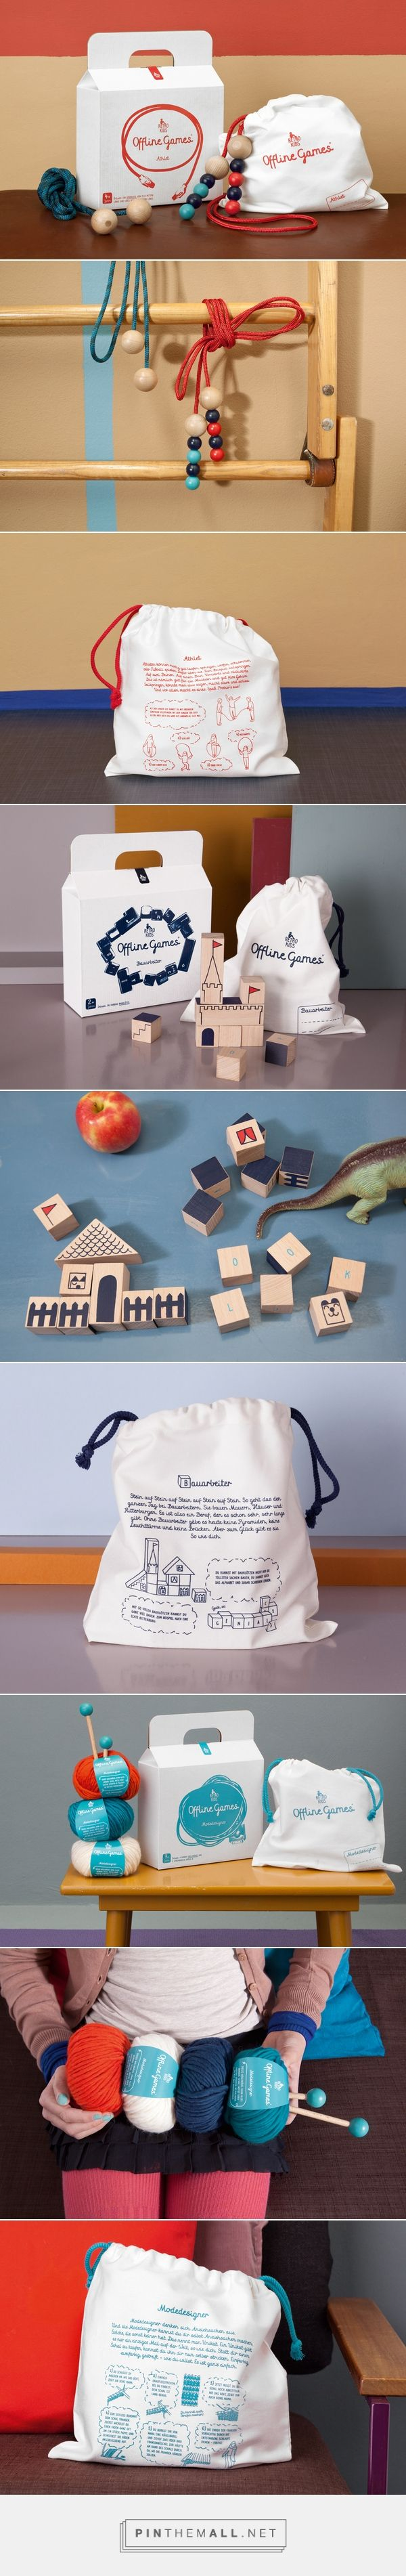 Offline Games // Offline Games Product and packaging design for old-school children's toys.